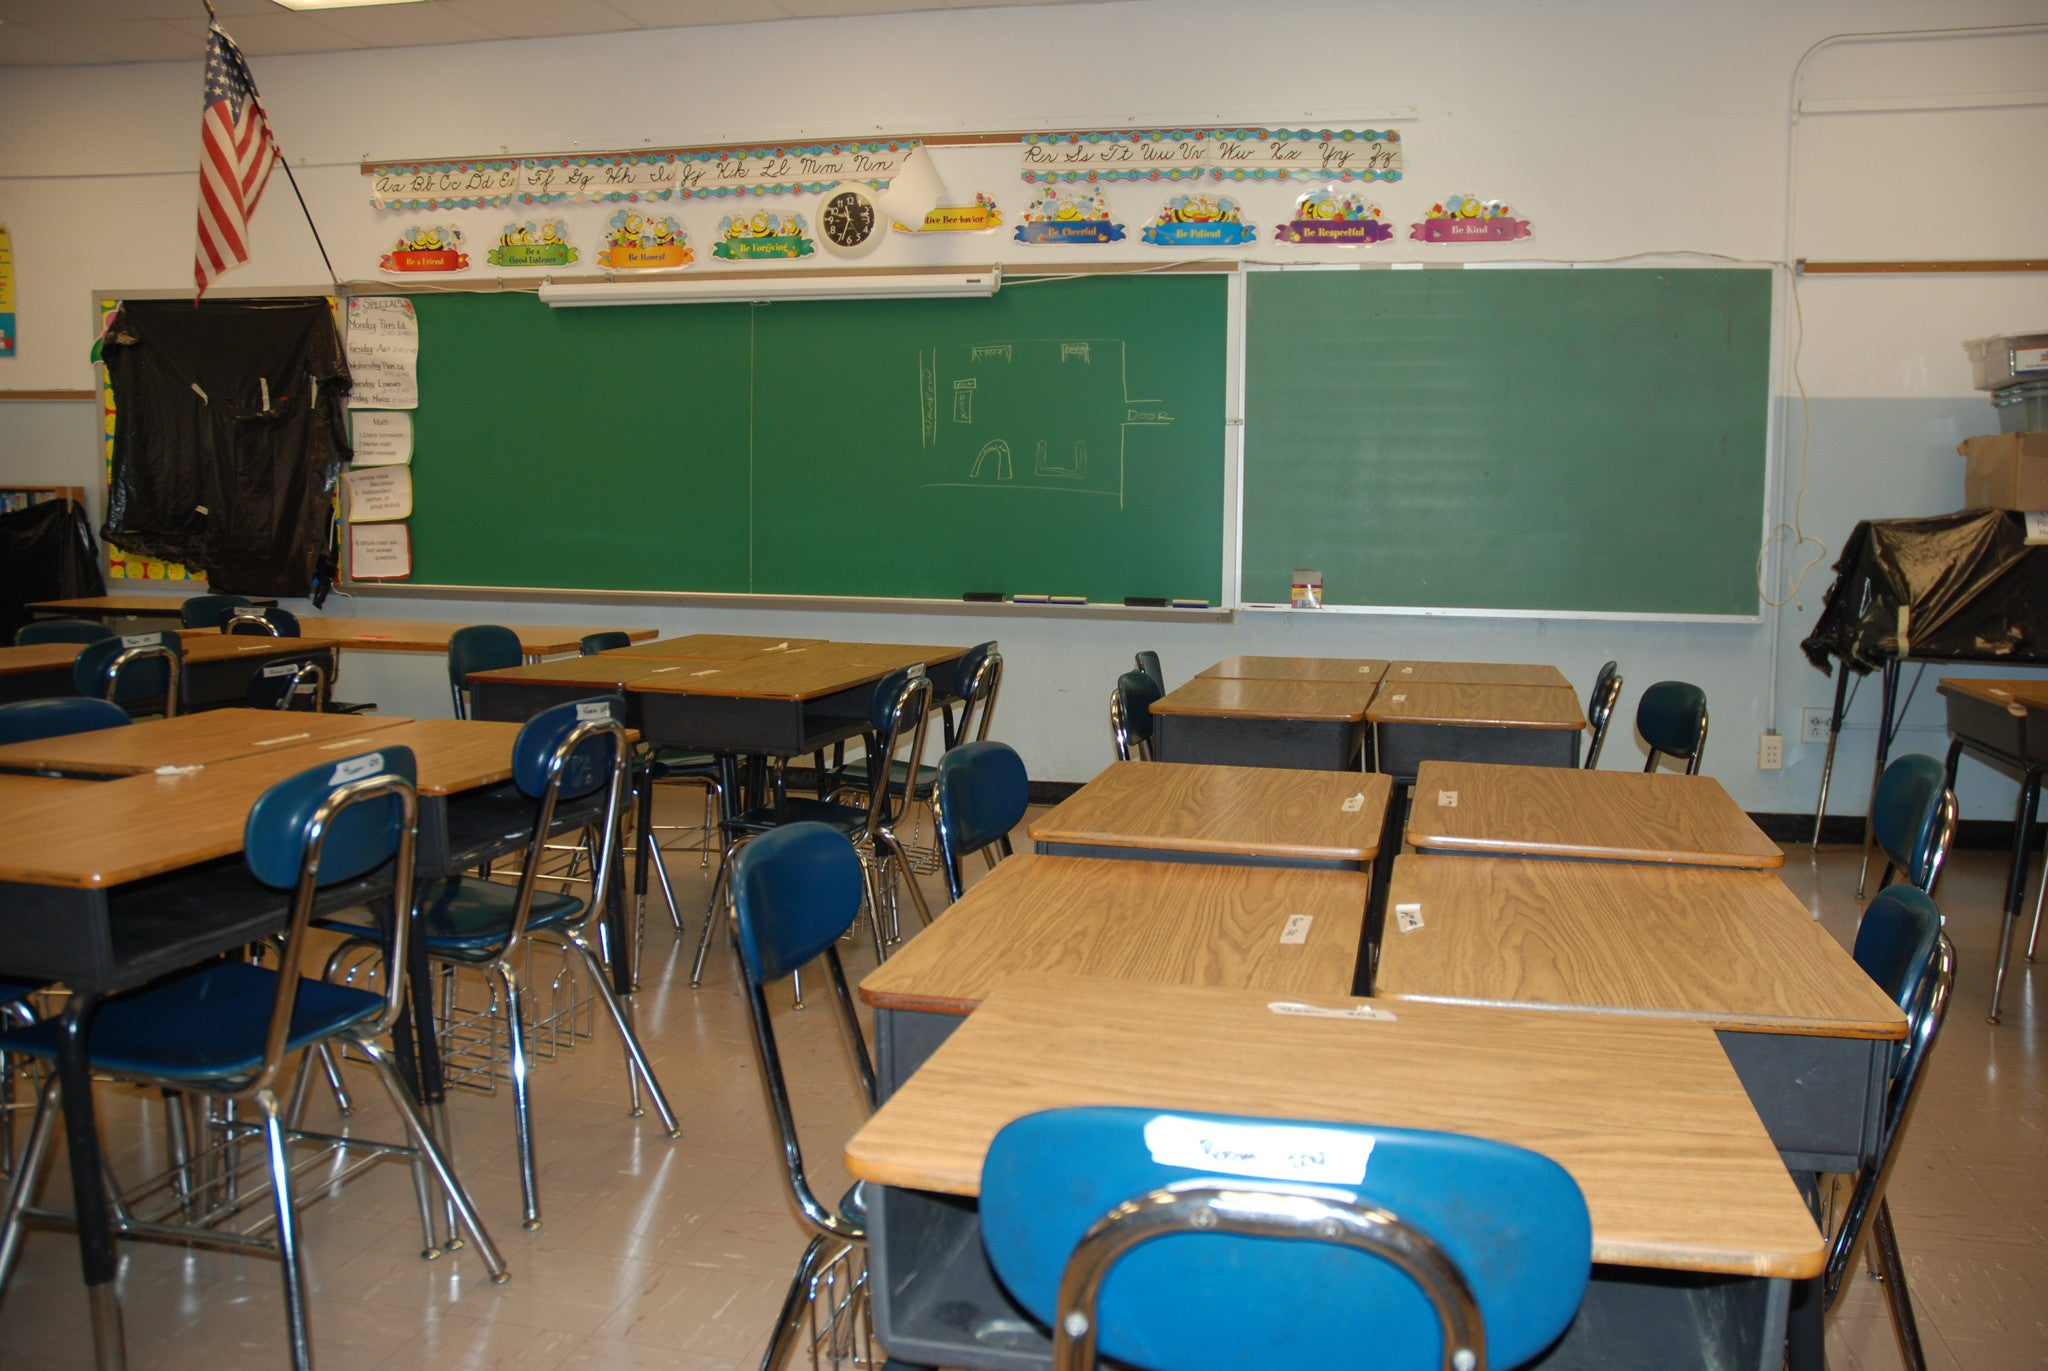 Classroom Management: Reconsidering Physical Classroom Structure